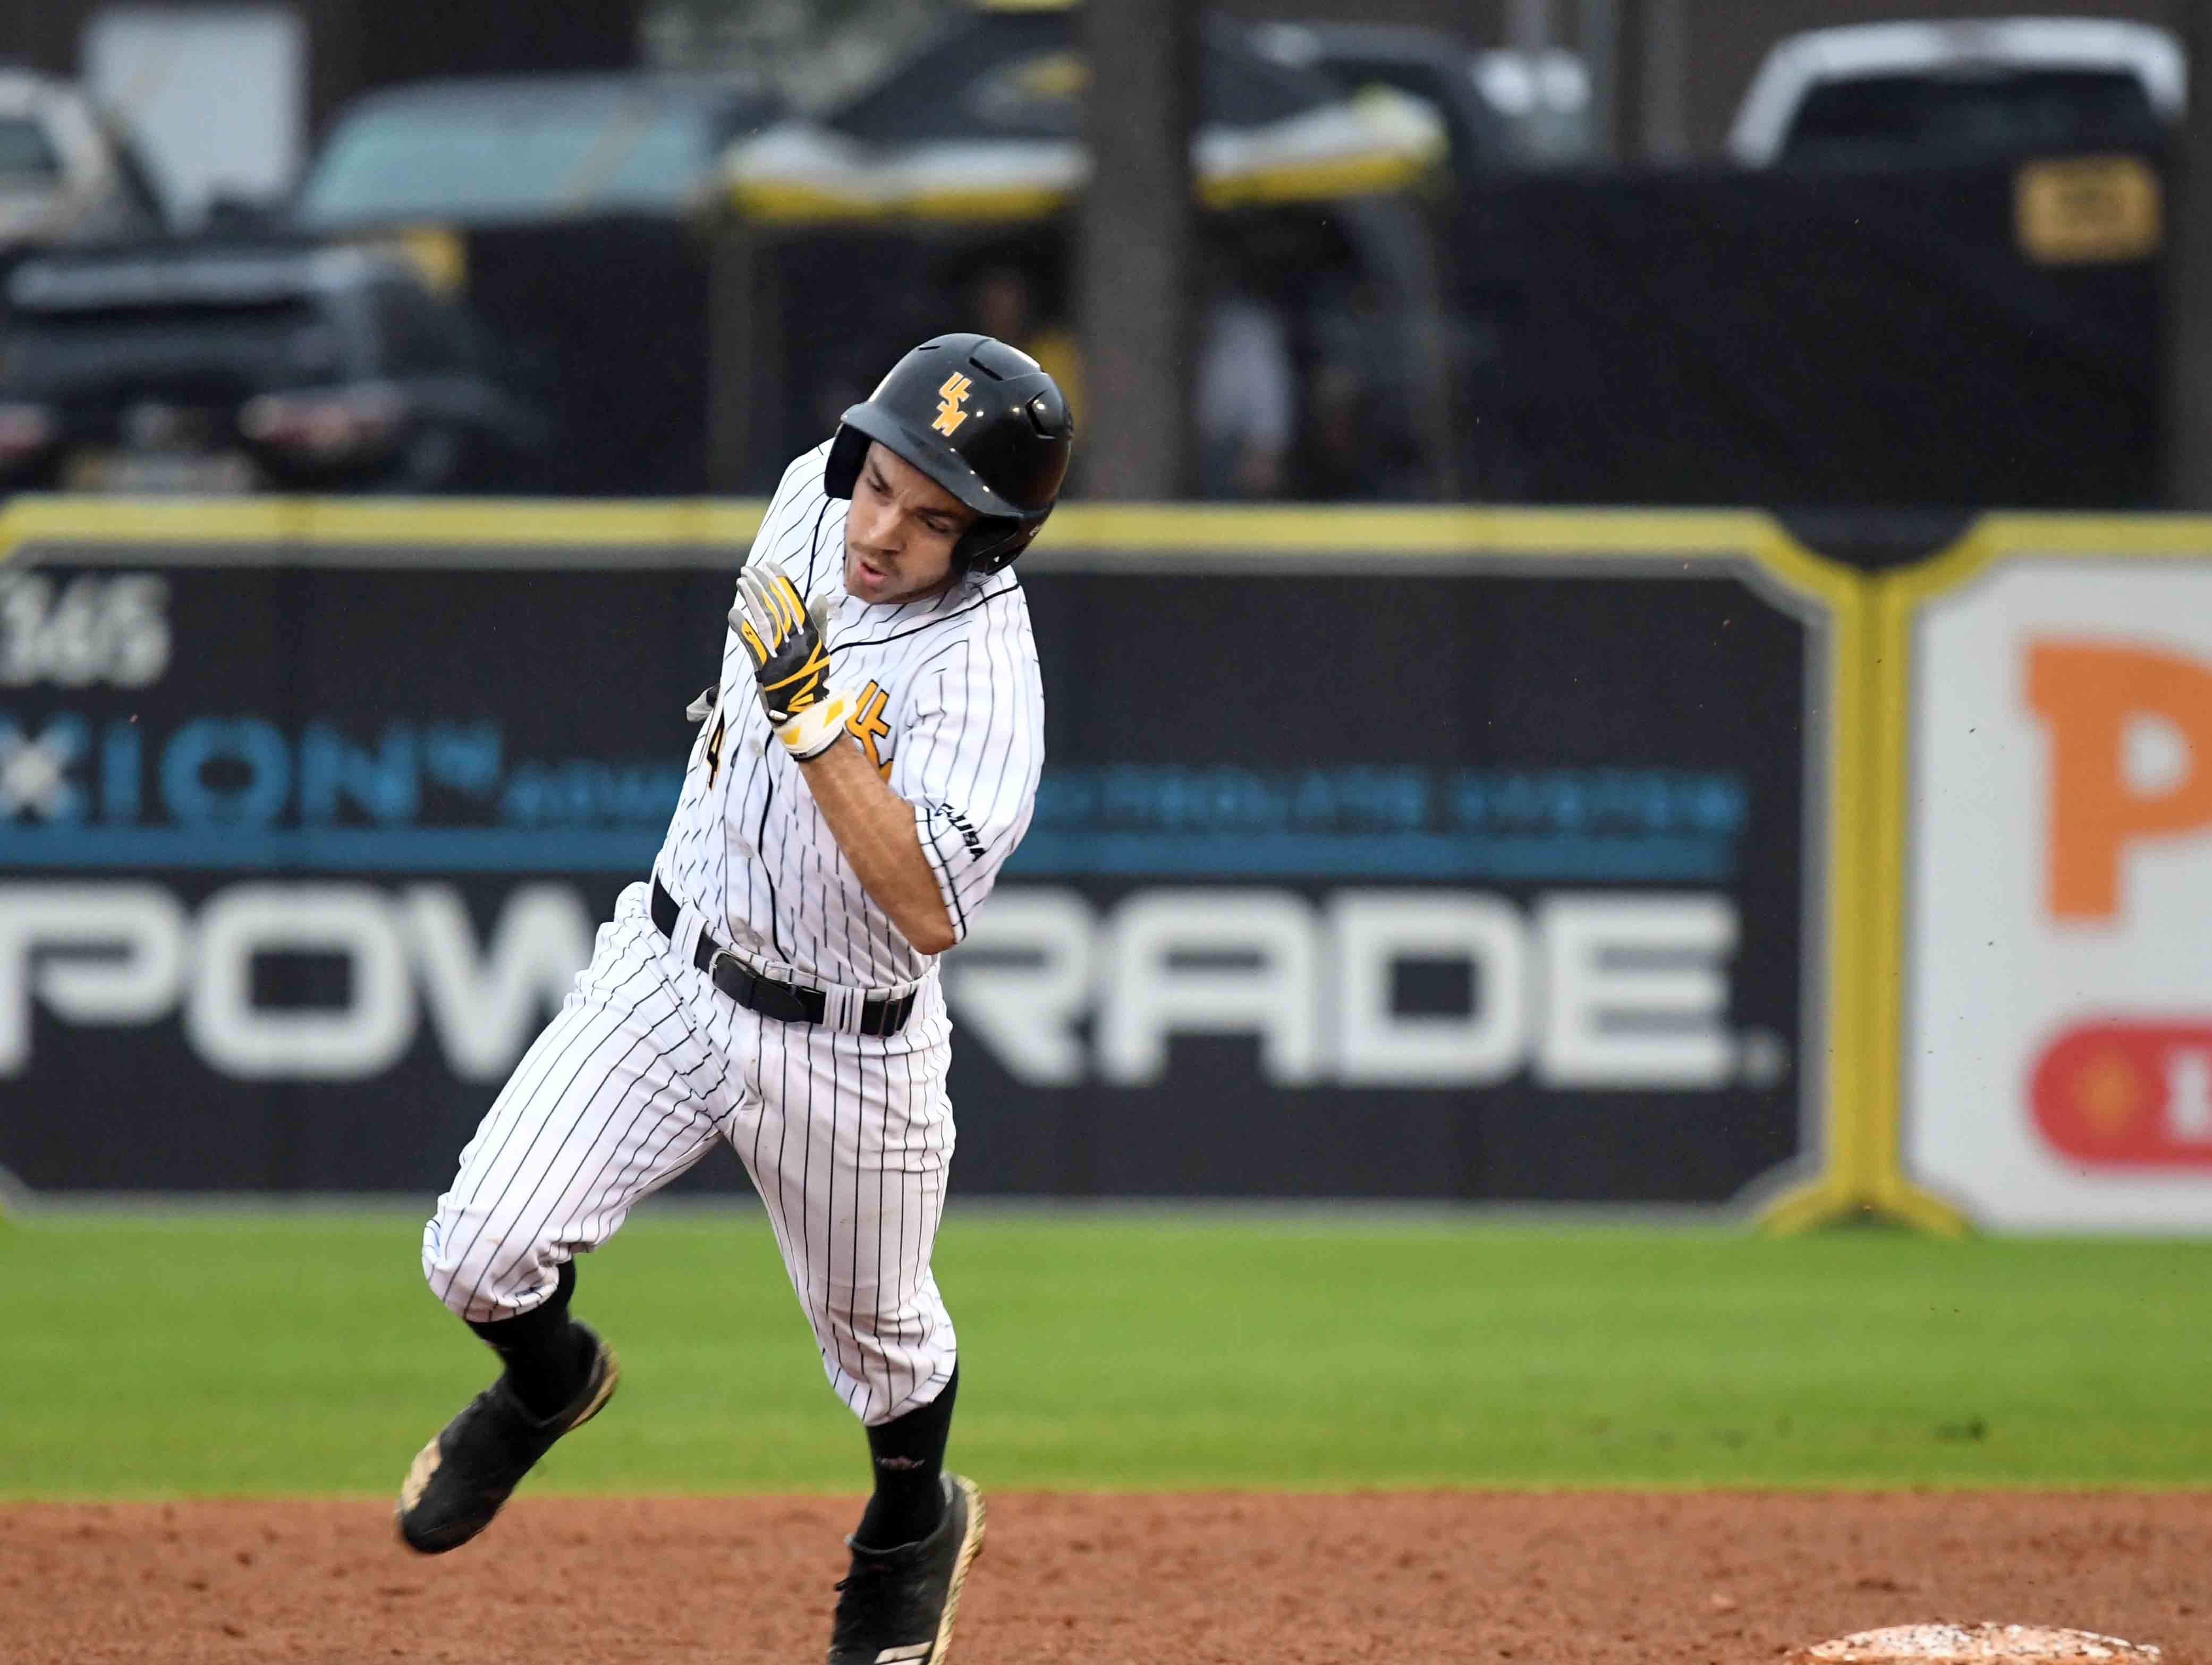 Southern Miss' Gabe Montenegro sprints to third base in the season opener against Purdue on Friday, February 15, 2019.